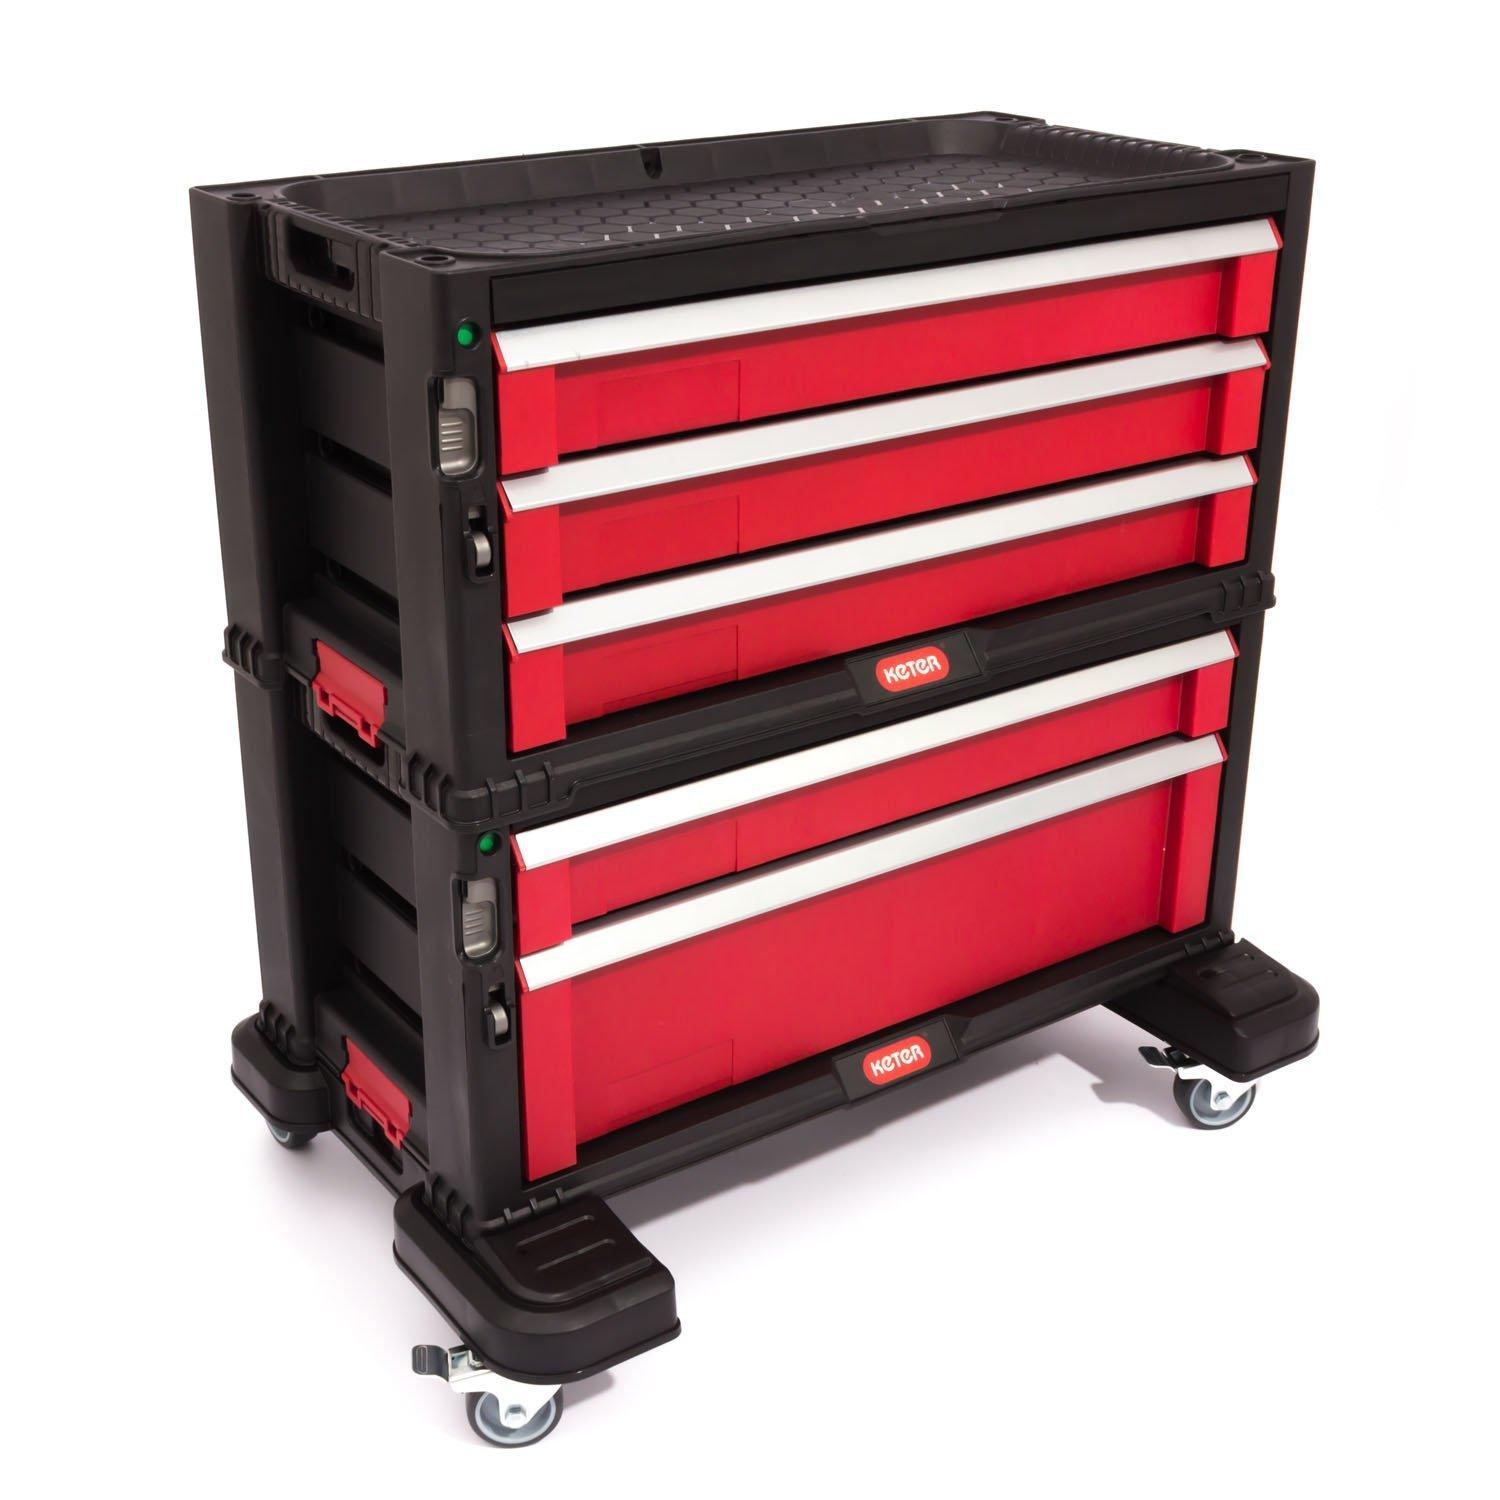 Keter Diy Tool Storage Trolley Tool Chest With 5 Drawers Black Red Silver